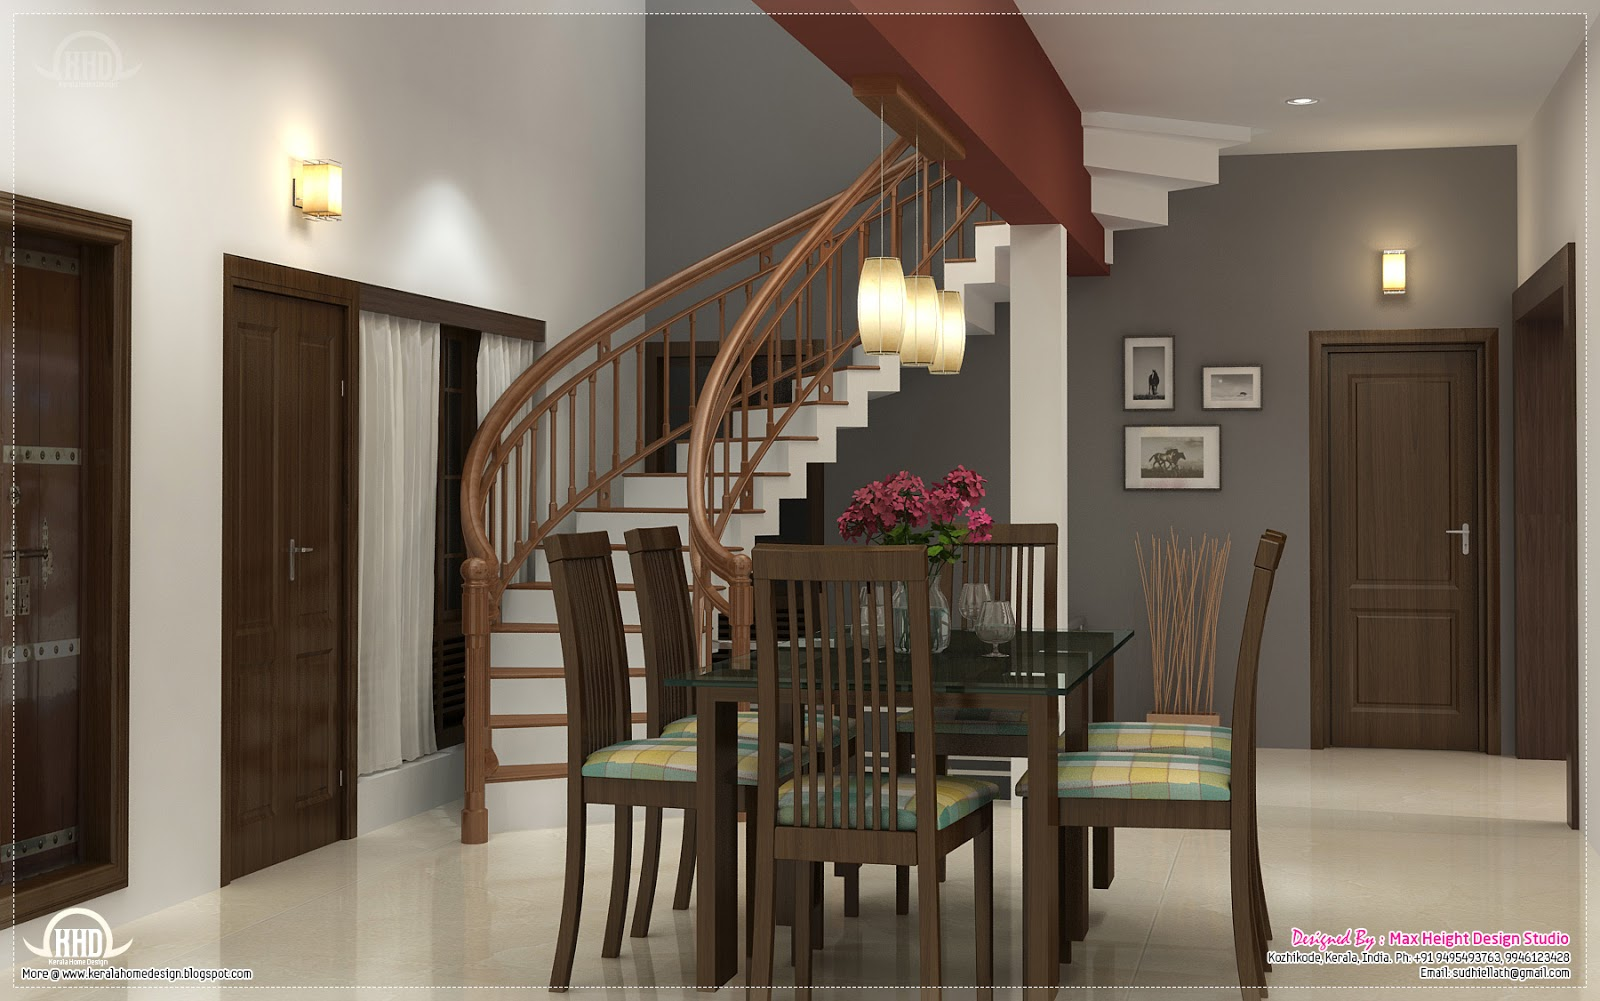 Home interior design ideas kerala home design and floor for Home interior